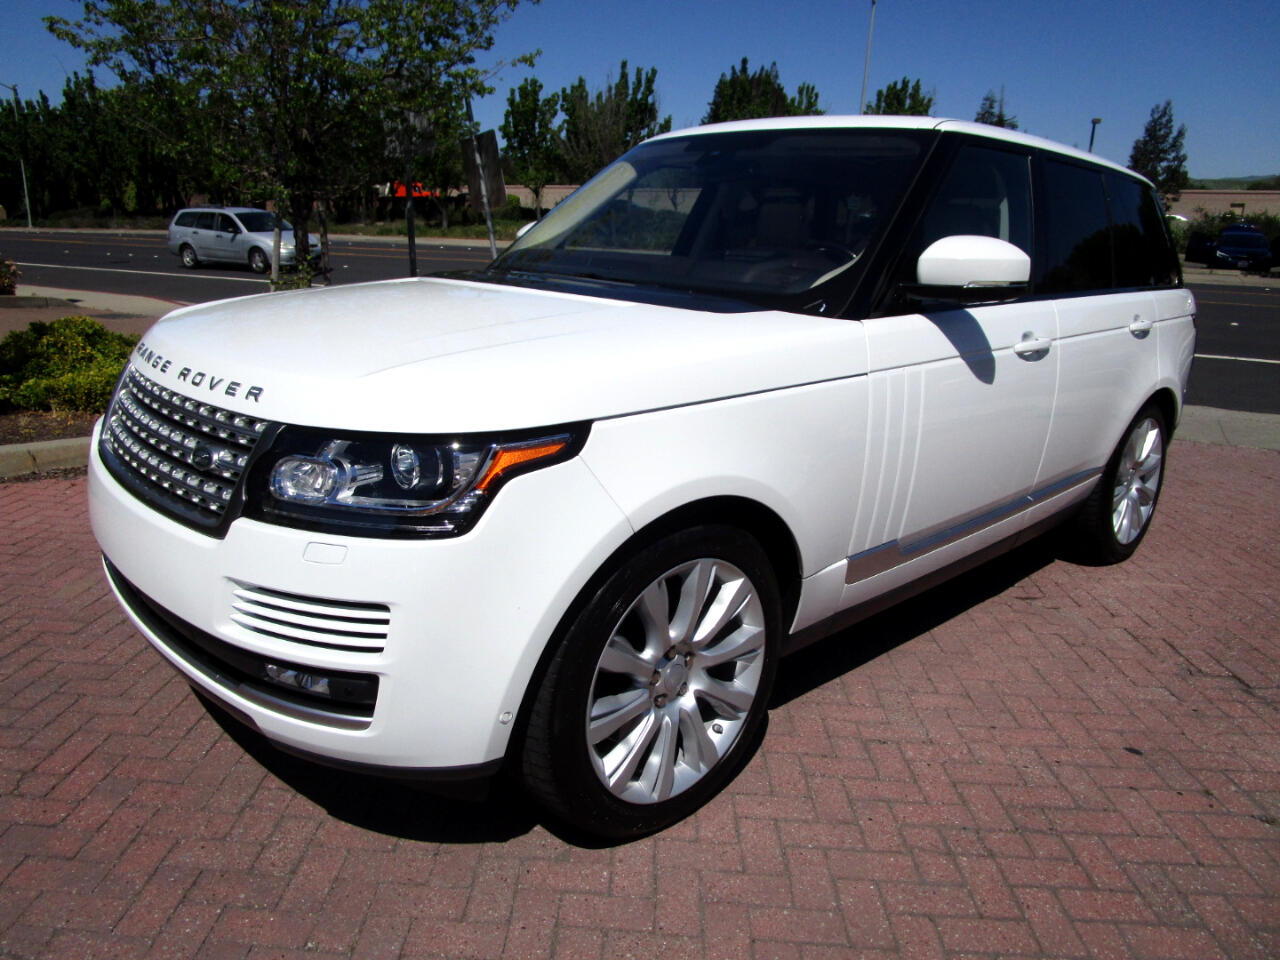 2016 Land Rover Range Rover SUPERCHARGED V8*HEADS-UP*DRIVER ASSIST*PANO ROOF*